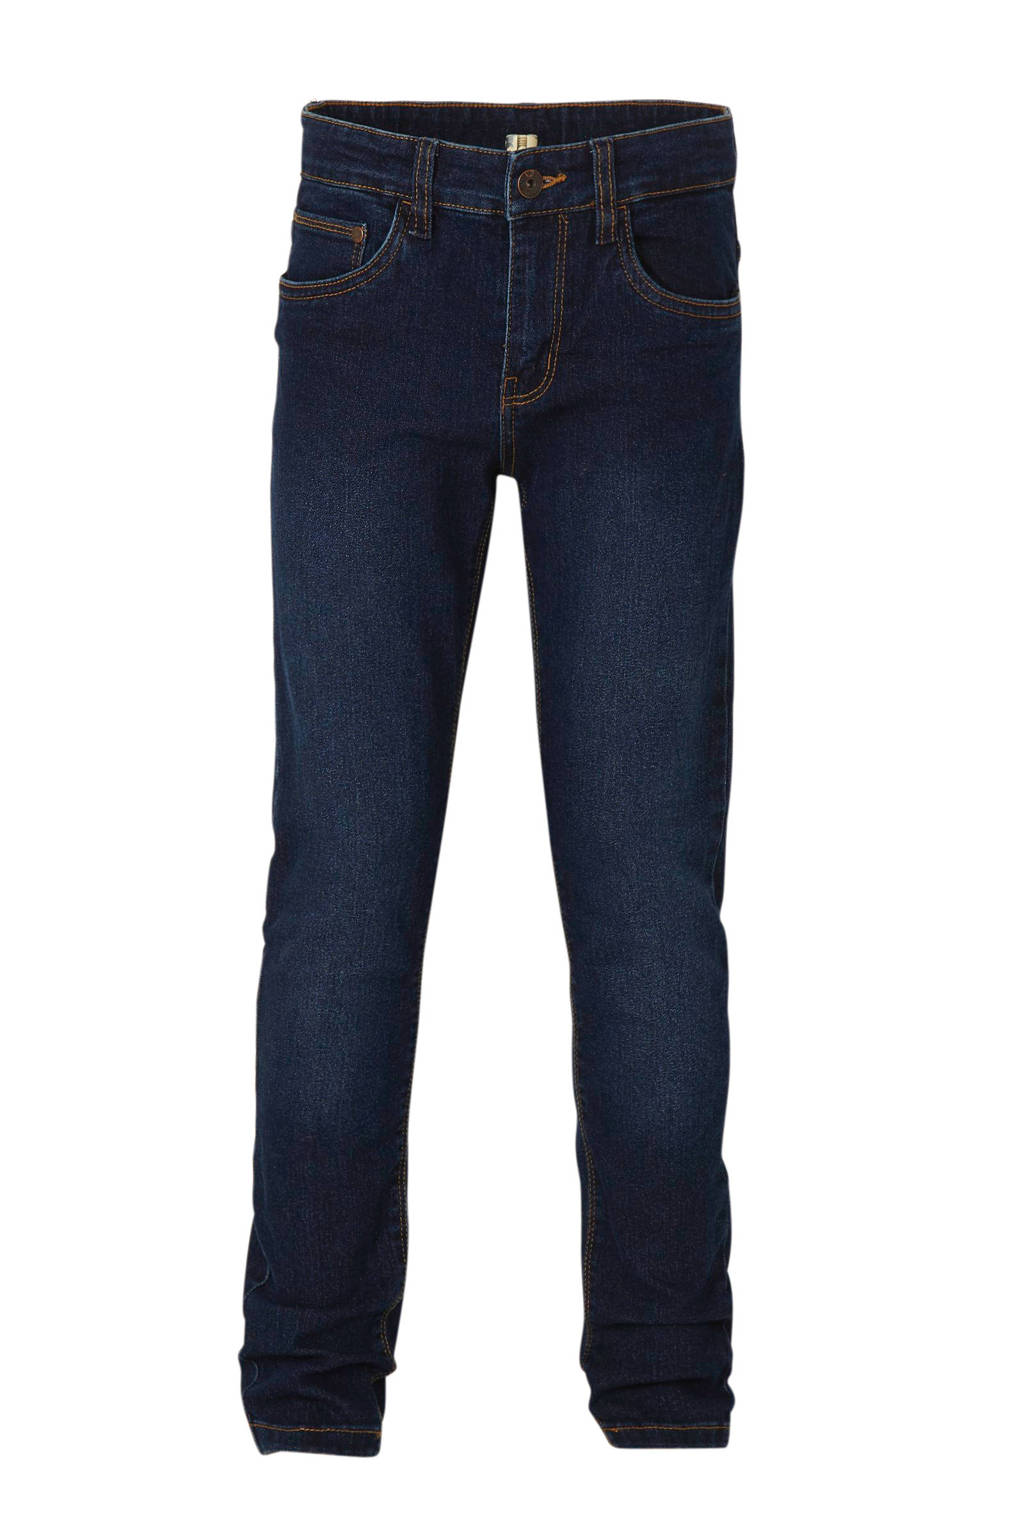 C&A Here & There skinny jeans blauw, Blauw